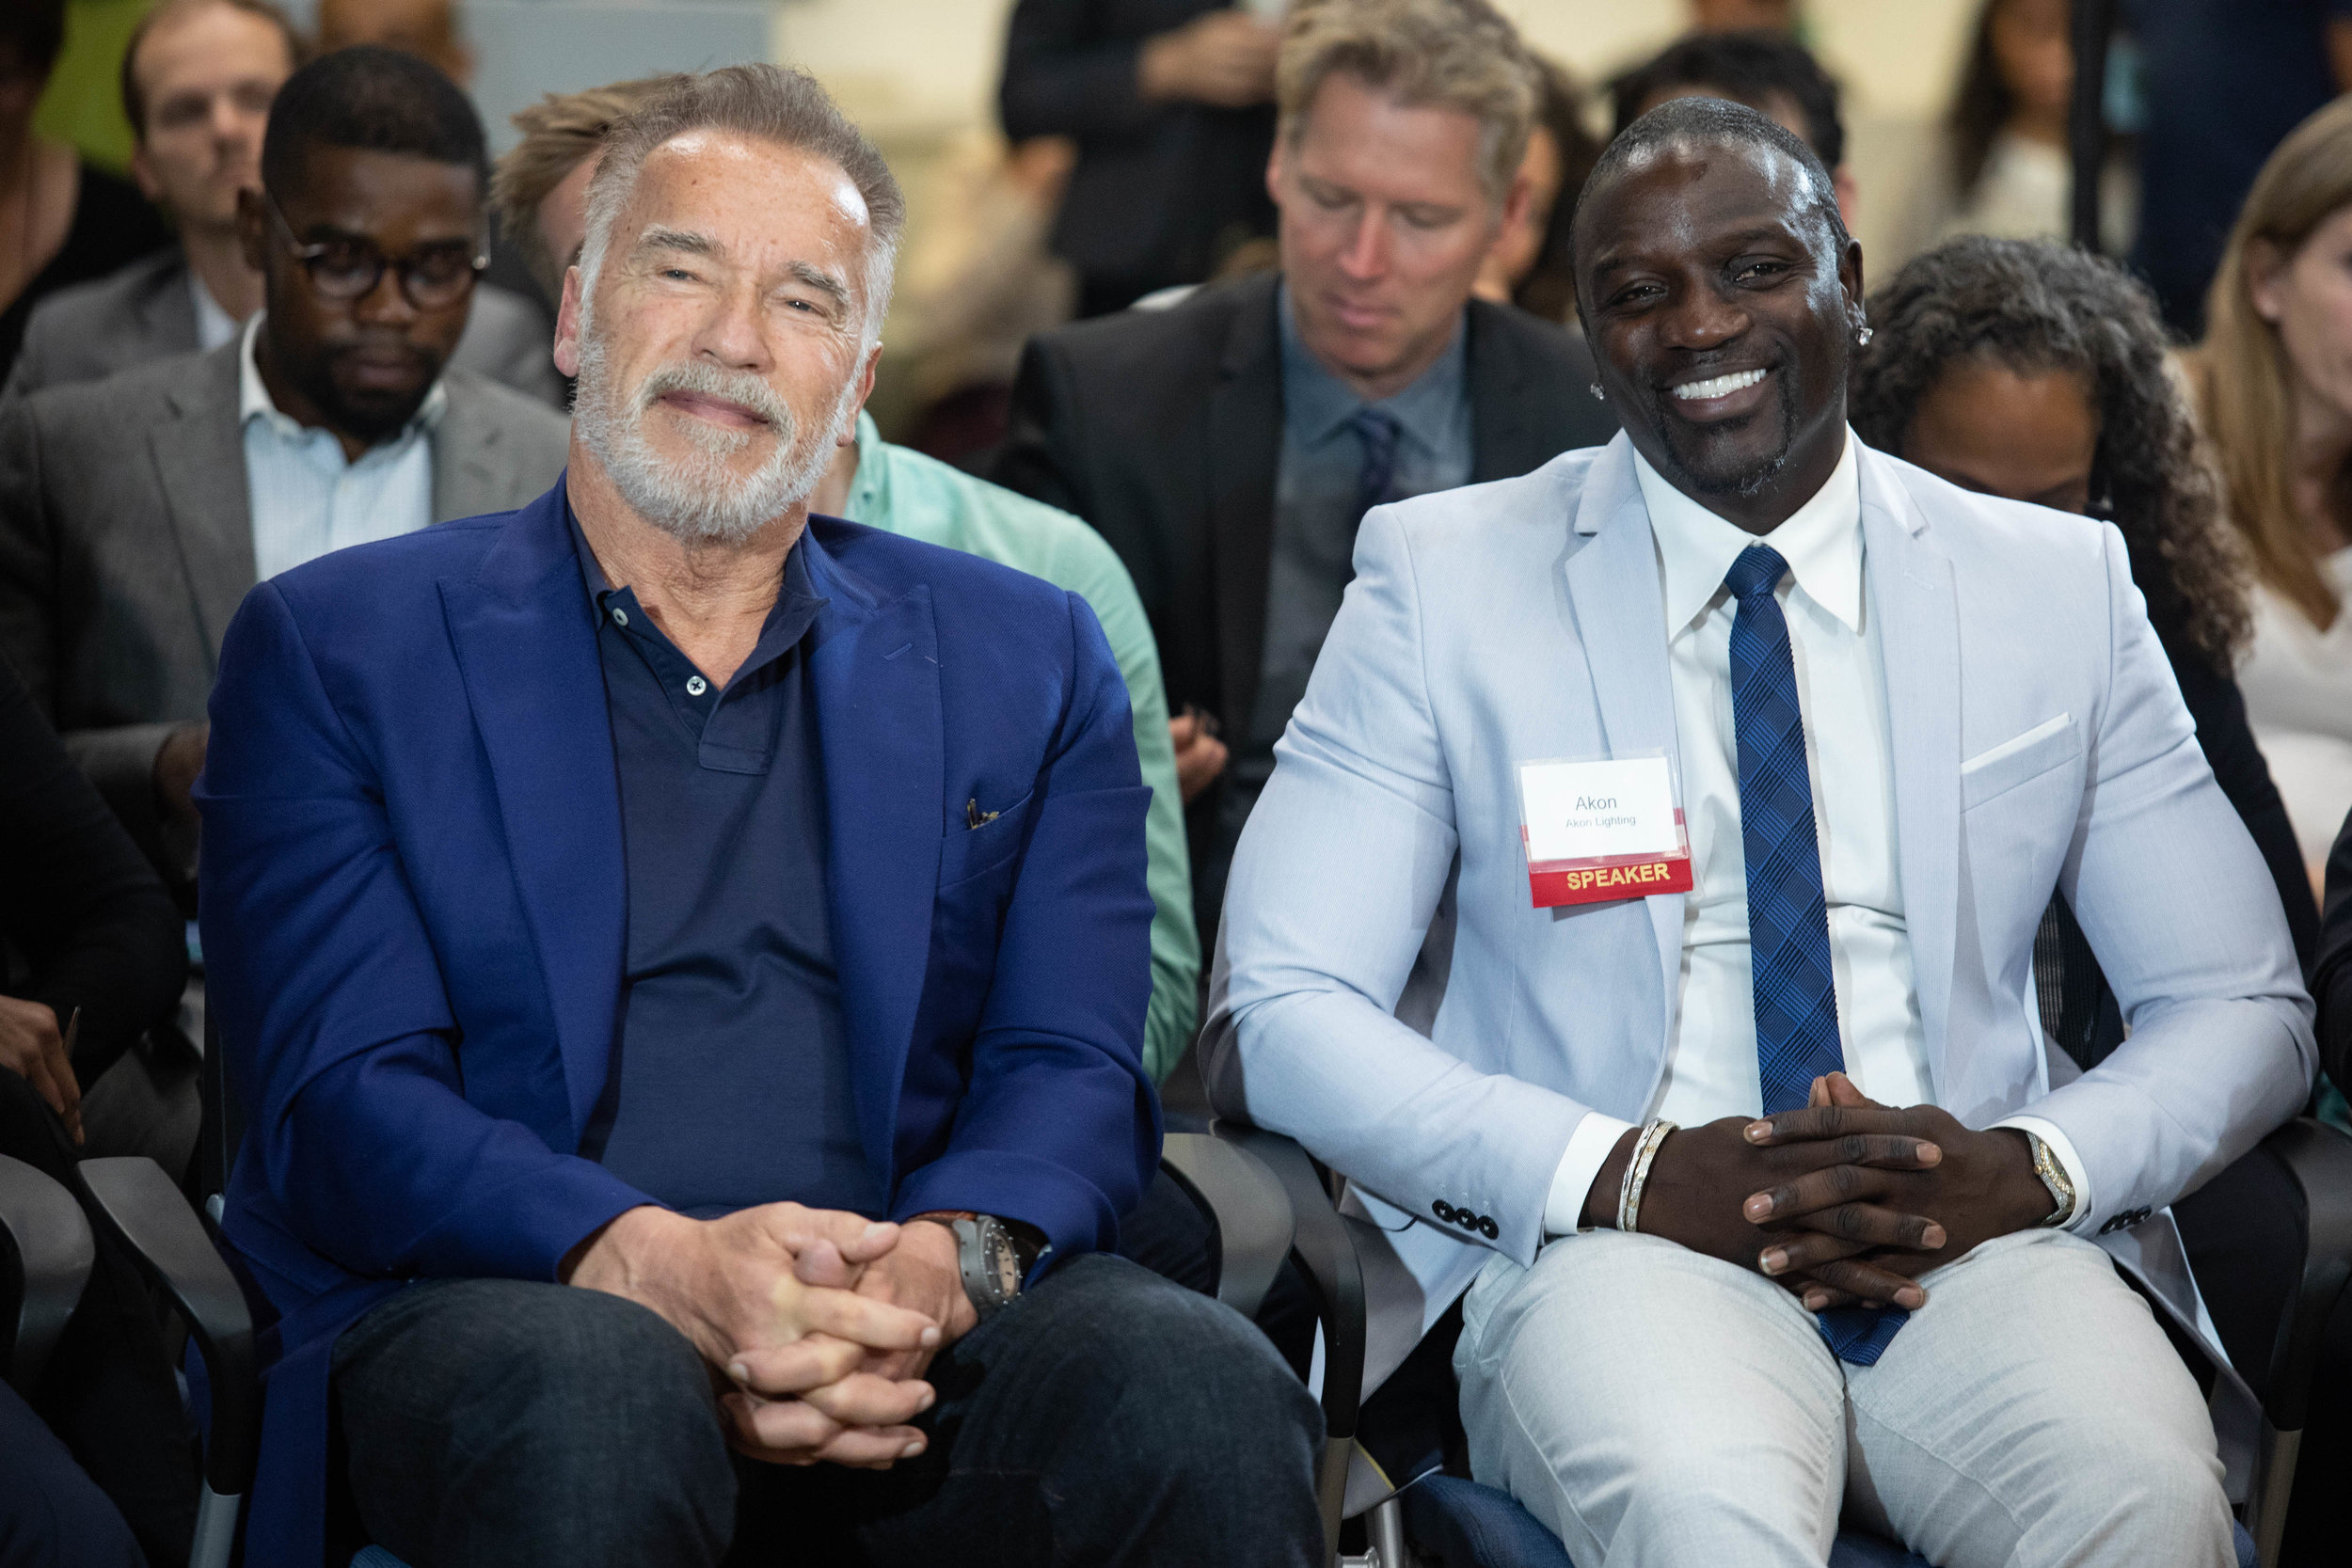 Former California Governor Arnold Schwarzenegger and Grammy-nominated musician Akon